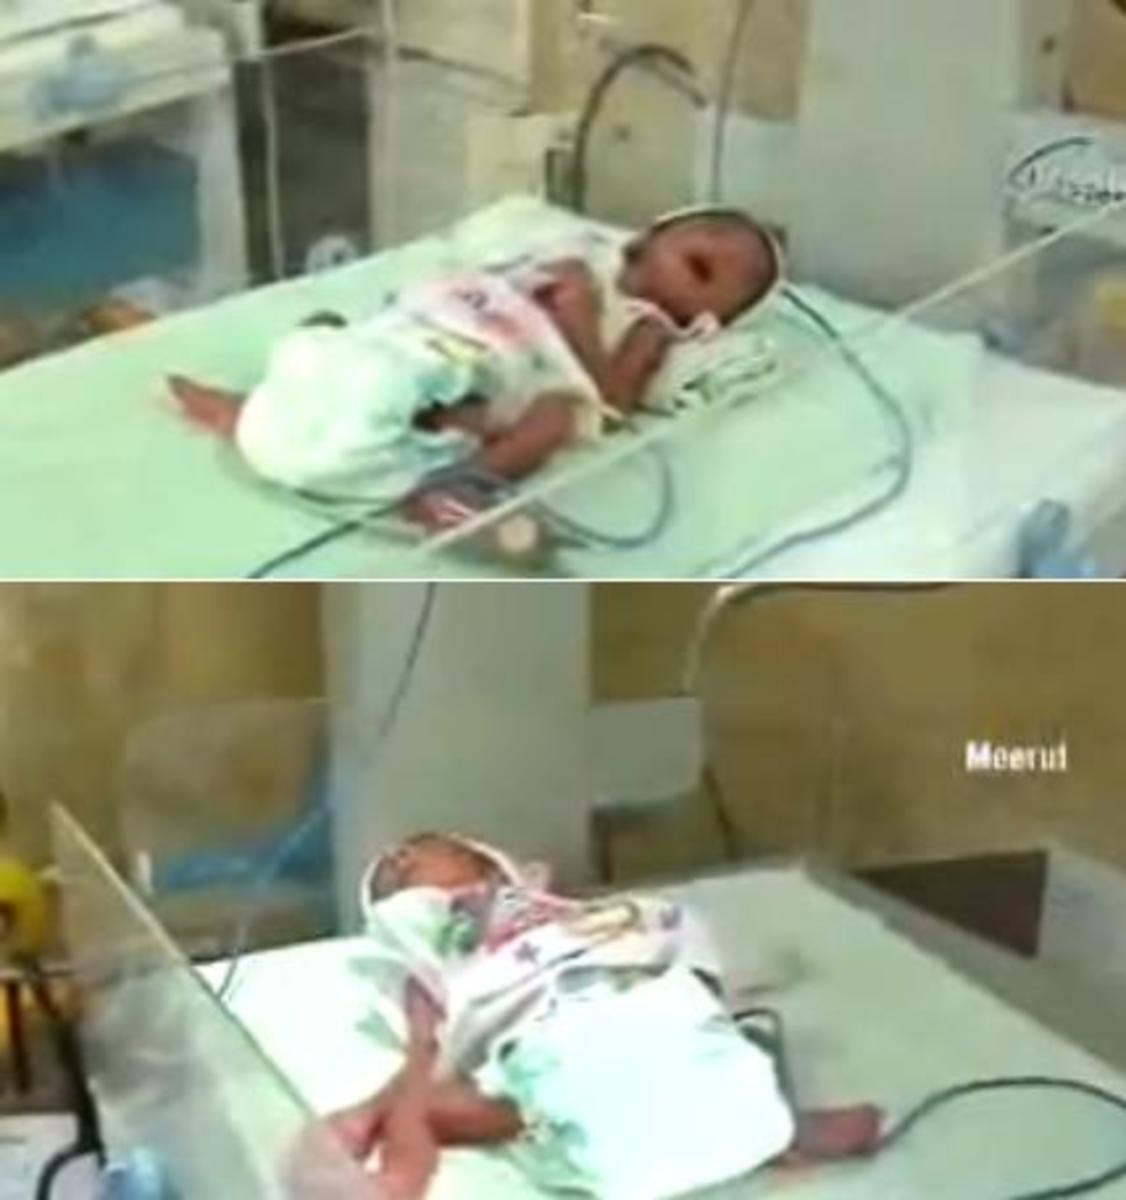 70-year-old woman give birth to twins